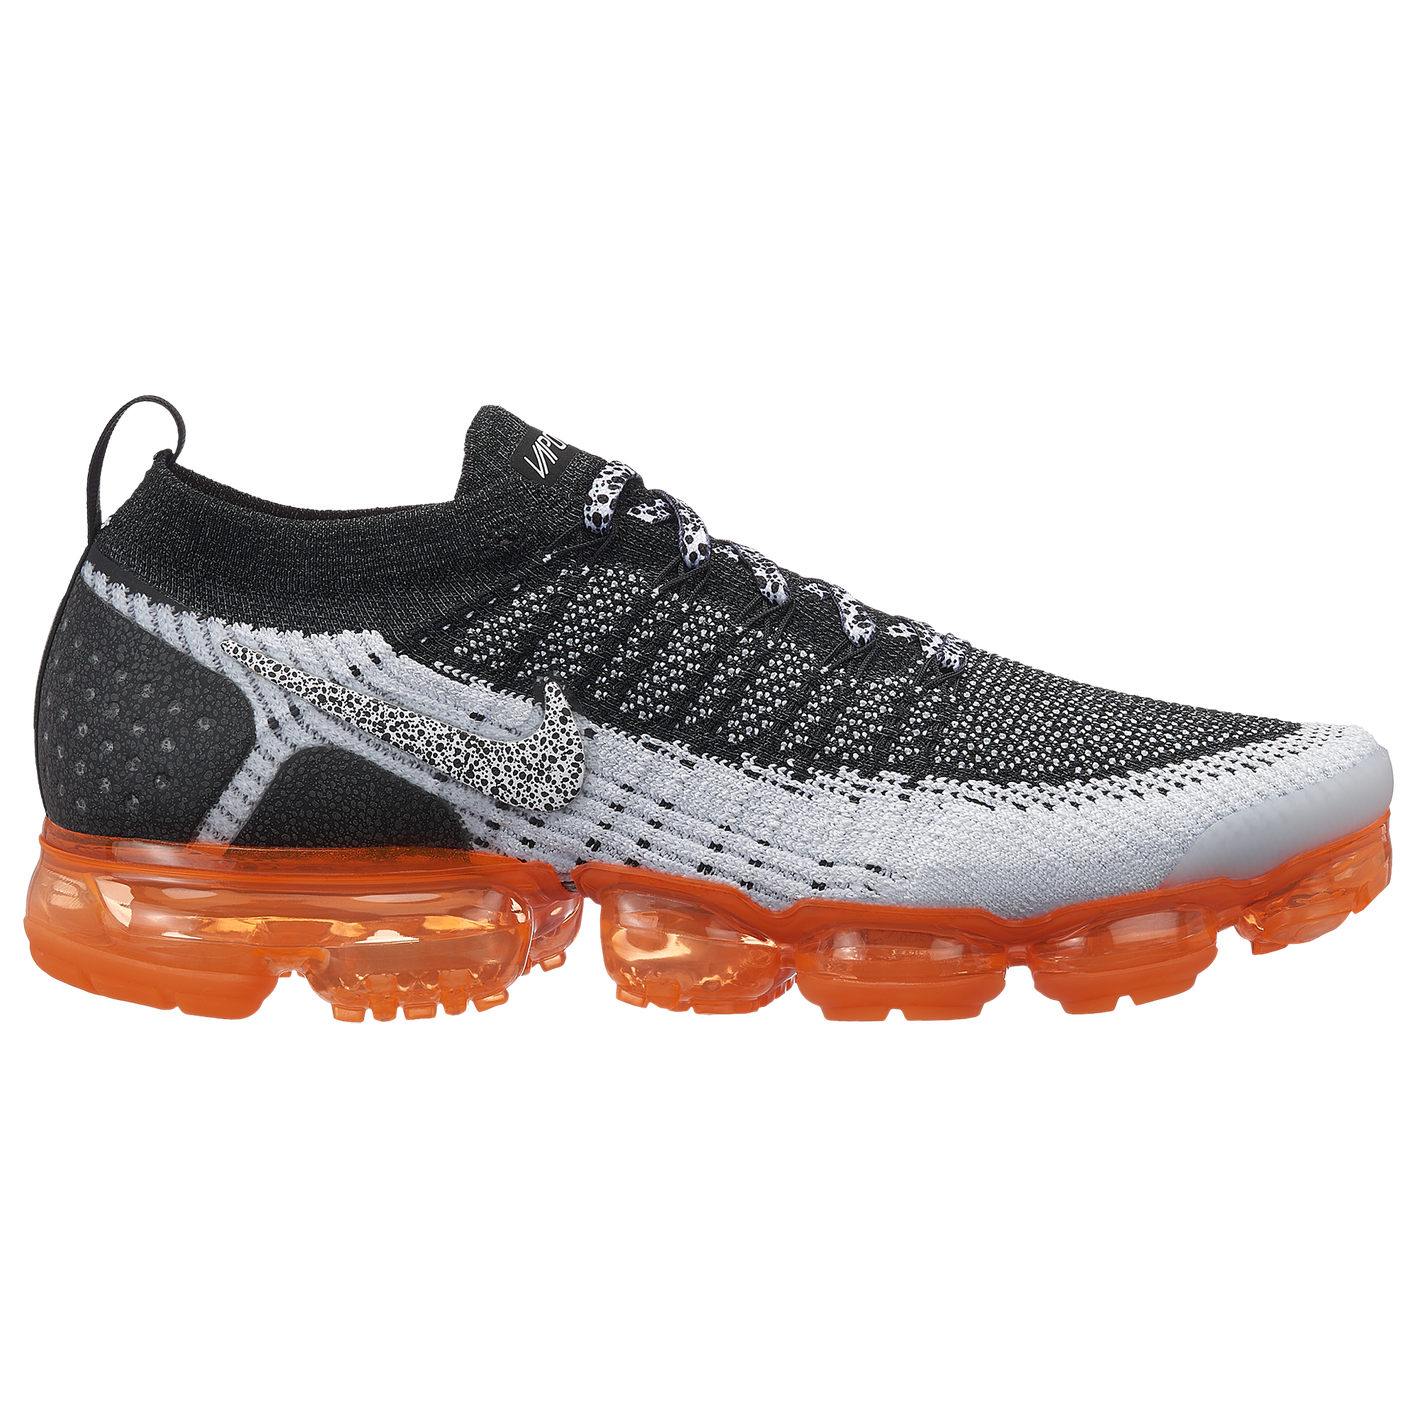 a6047846e7b11 Nike Air Vapormax Flyknit 2 - Men s - Casual - Shoes - Grey Orange White